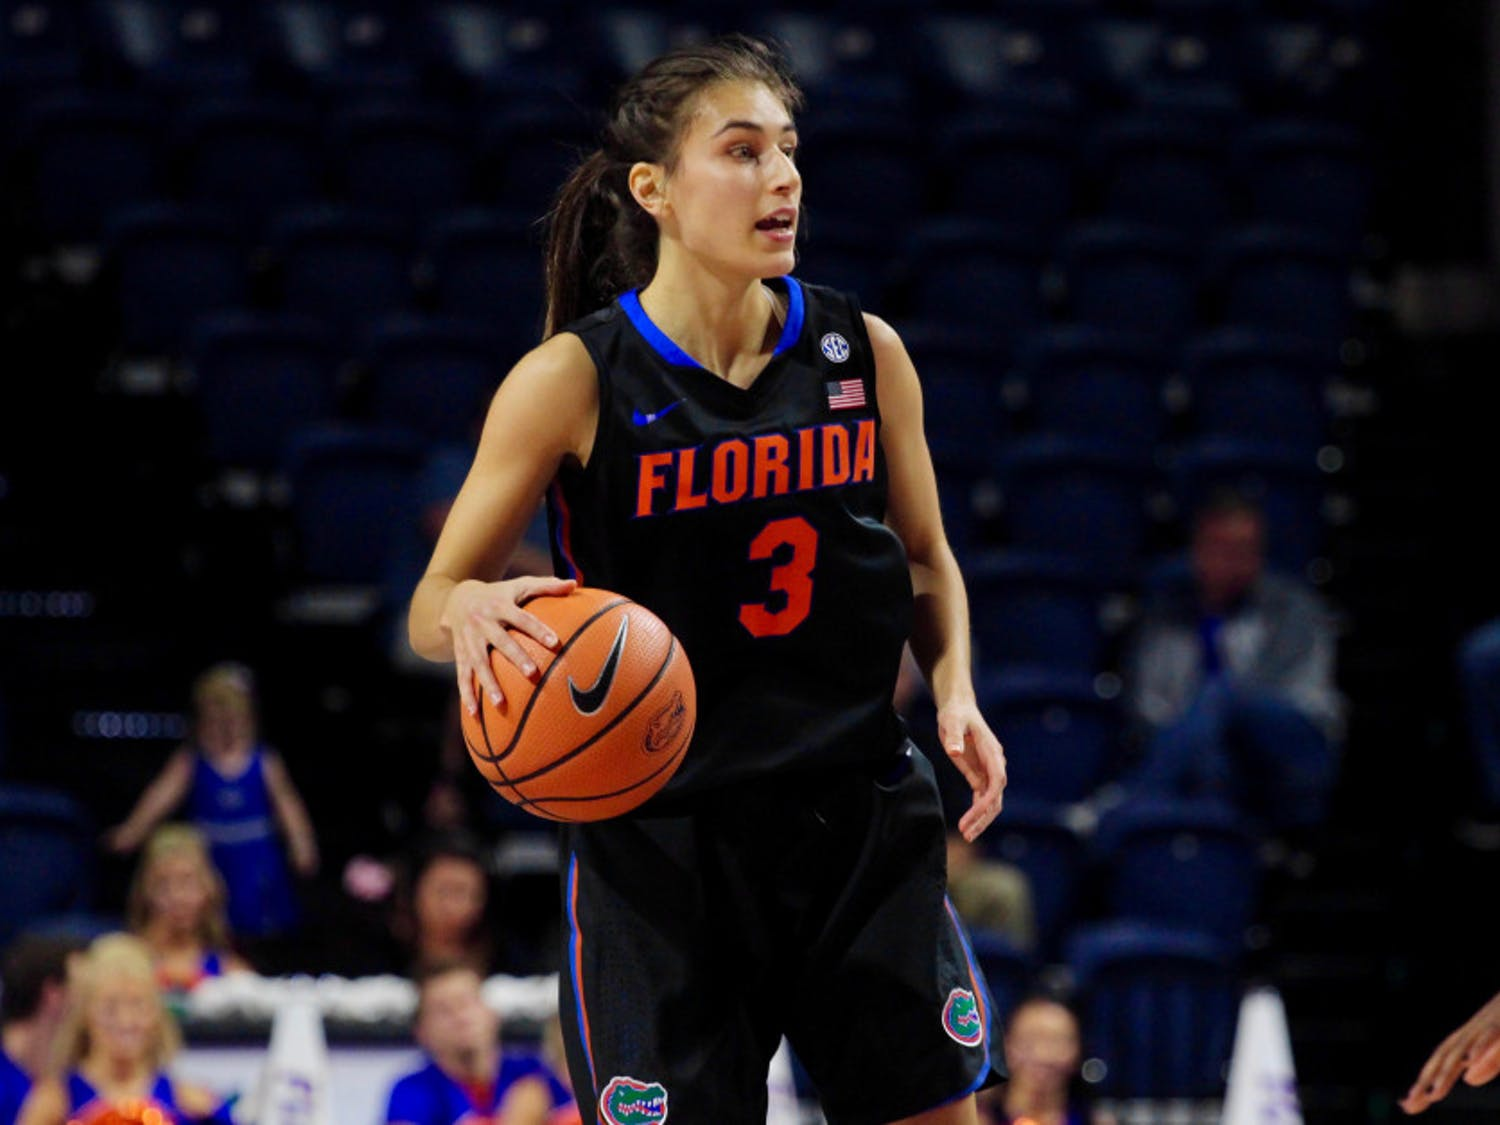 Guard Funda Nakkasoglu scored 22 points in Florida's 60-58 loss to Gardner-Webb. She shot the potential game-winning three with second remaining, but was off the mark.